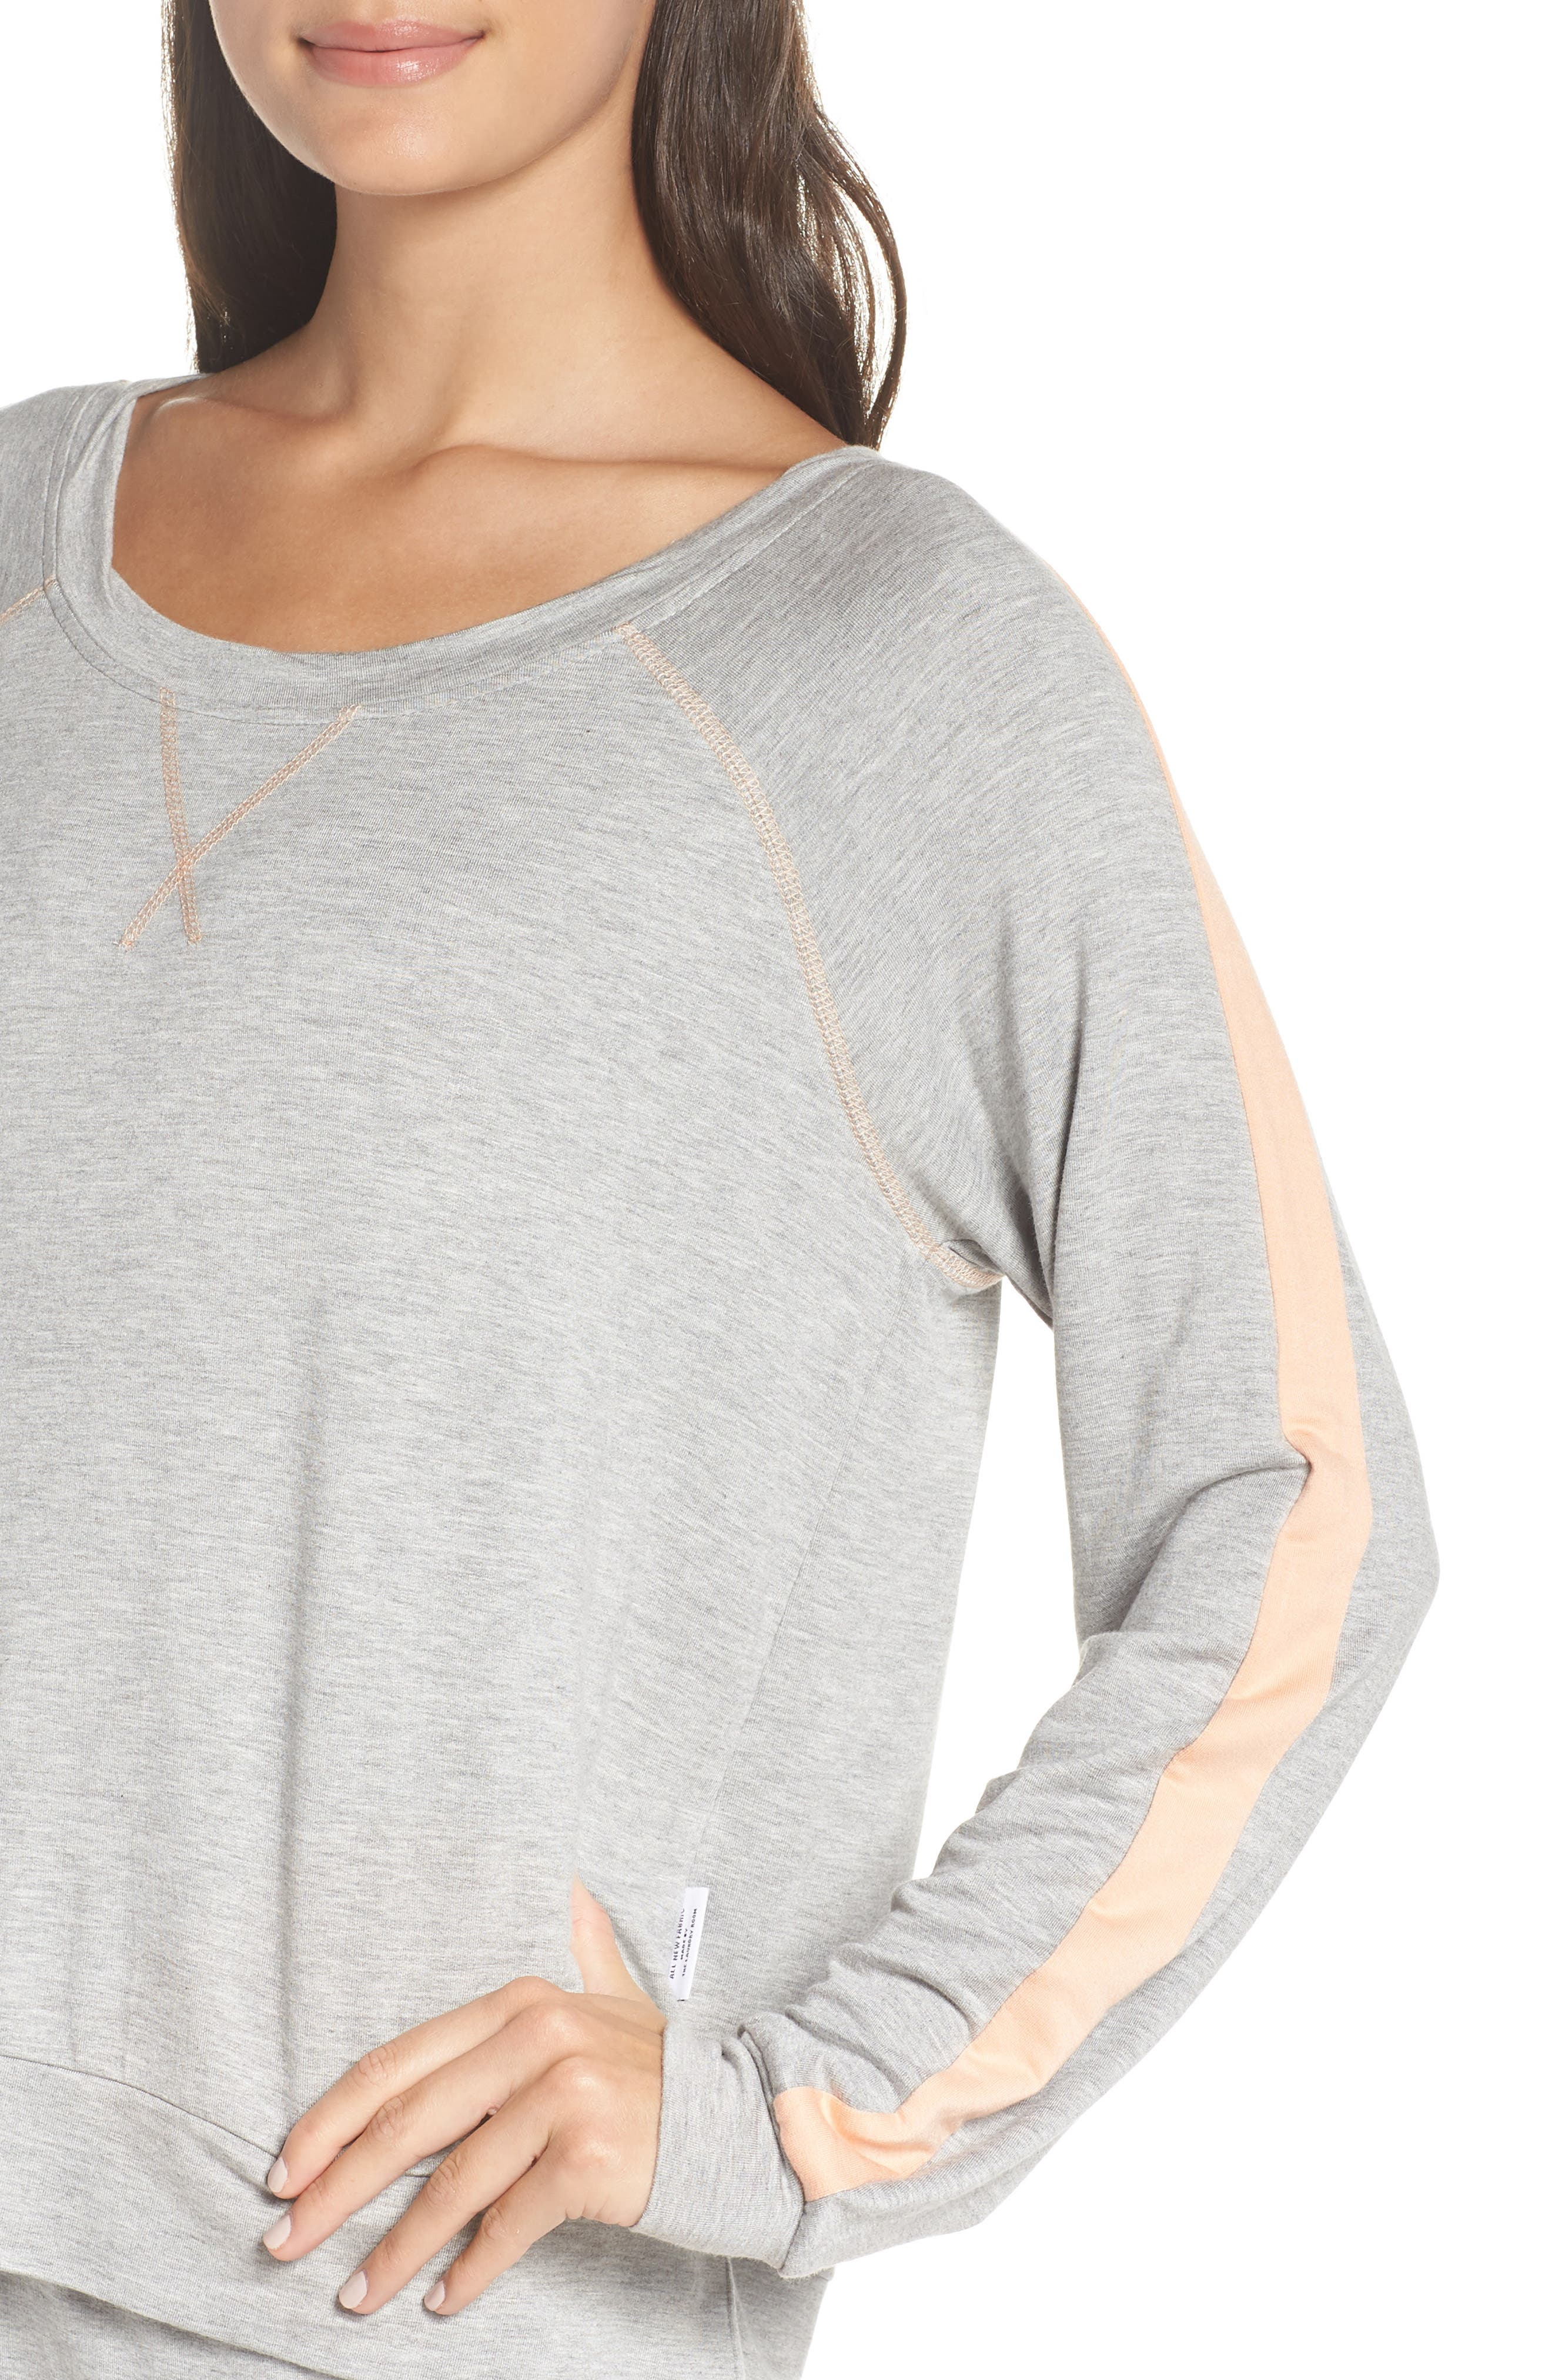 Elevens Sweatshirt,                             Alternate thumbnail 4, color,                             HEATHER / PEACH